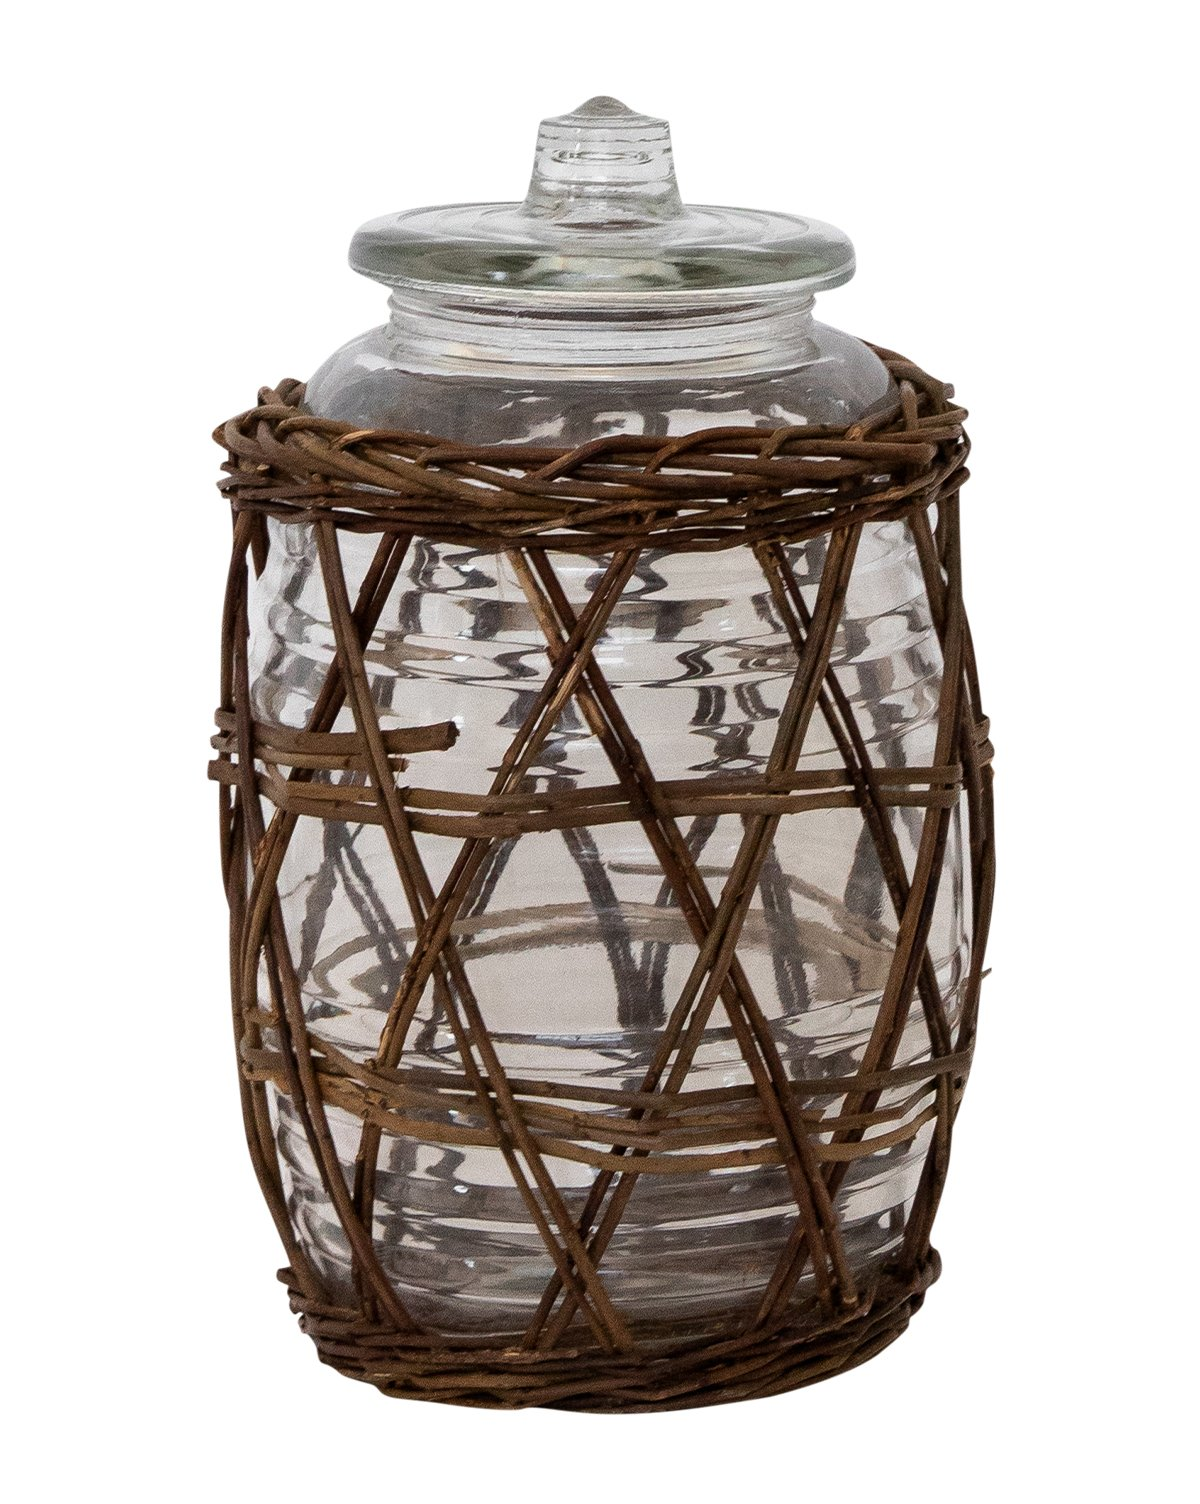 Willow_Wrapped_Jar1_1aa2ac71-3a3f-4a62-aa84-aed645070357.jpg